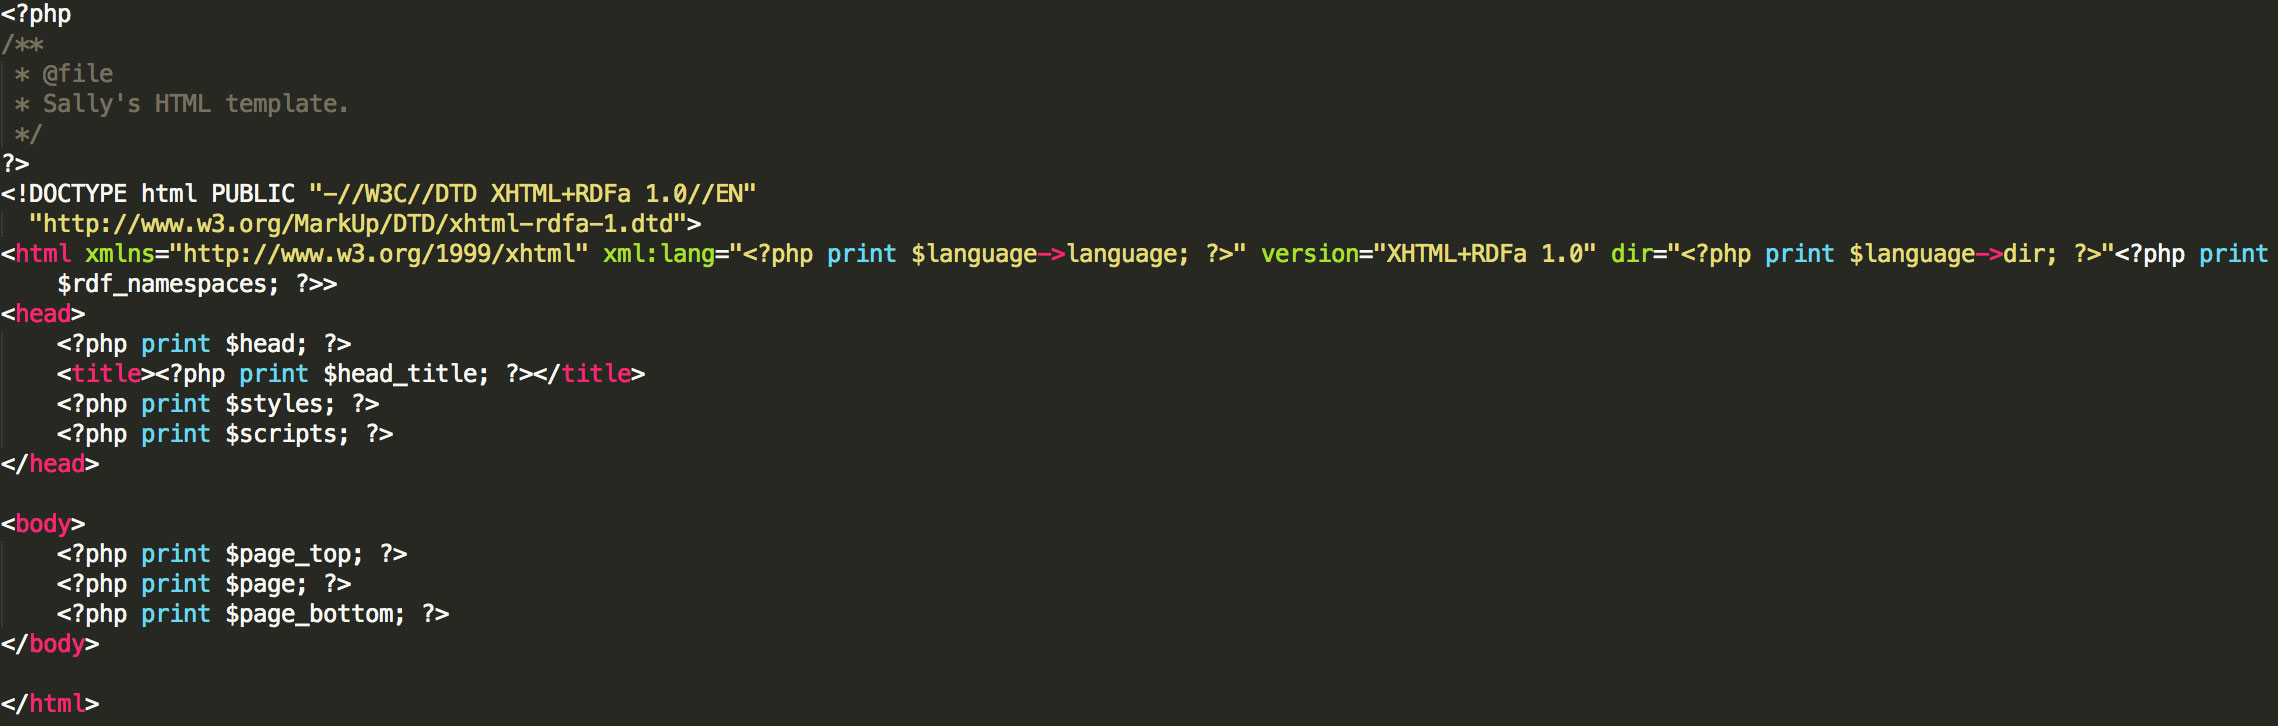 Converting Basic HTML/CSS into a Drupal Theme | Function1